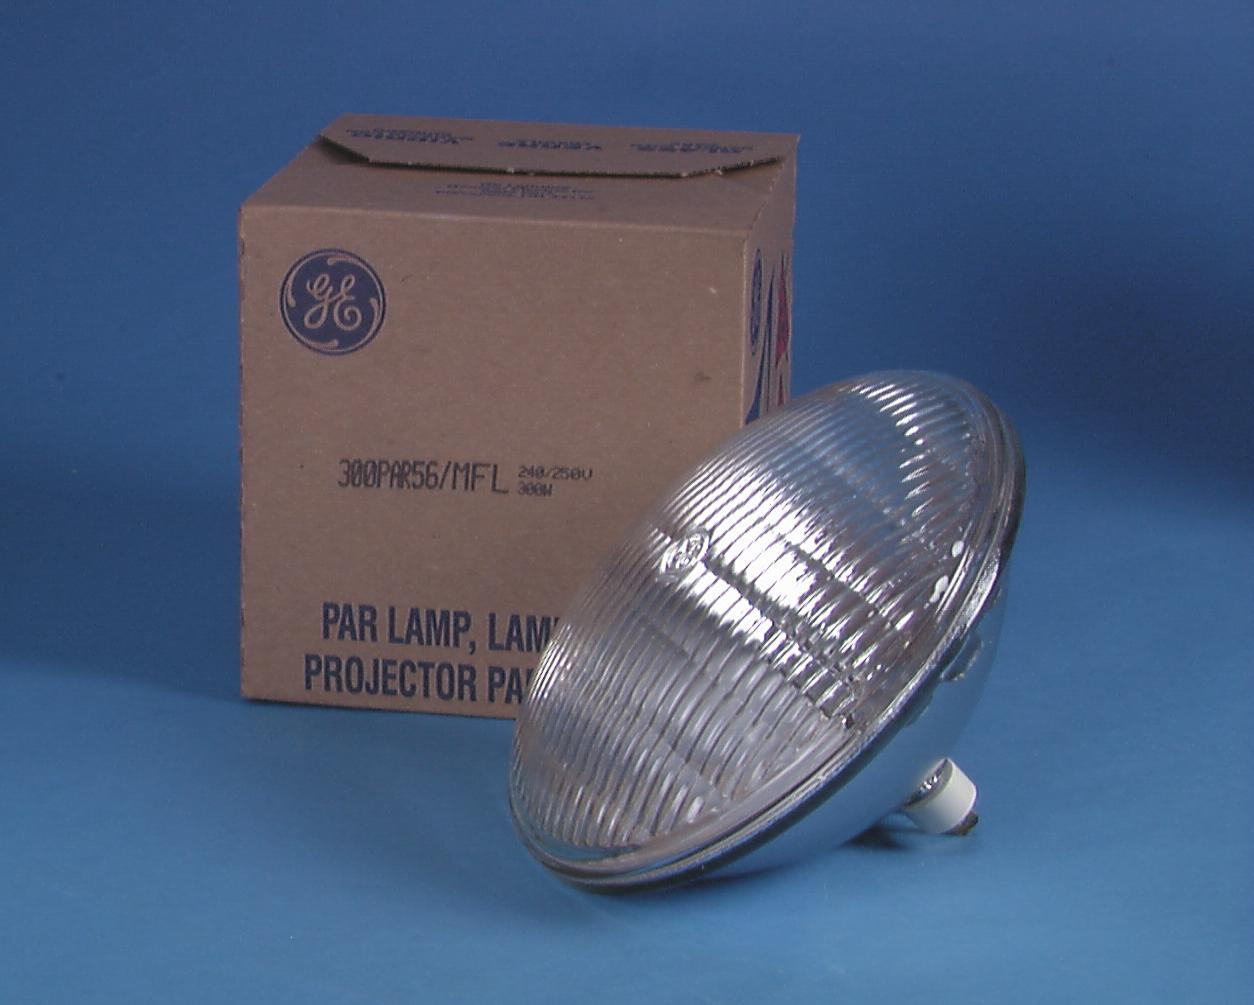 Lamp Headlight for PAR-56 GE PAR-56 240V/300W WFL GX16d 2000h 2750 K